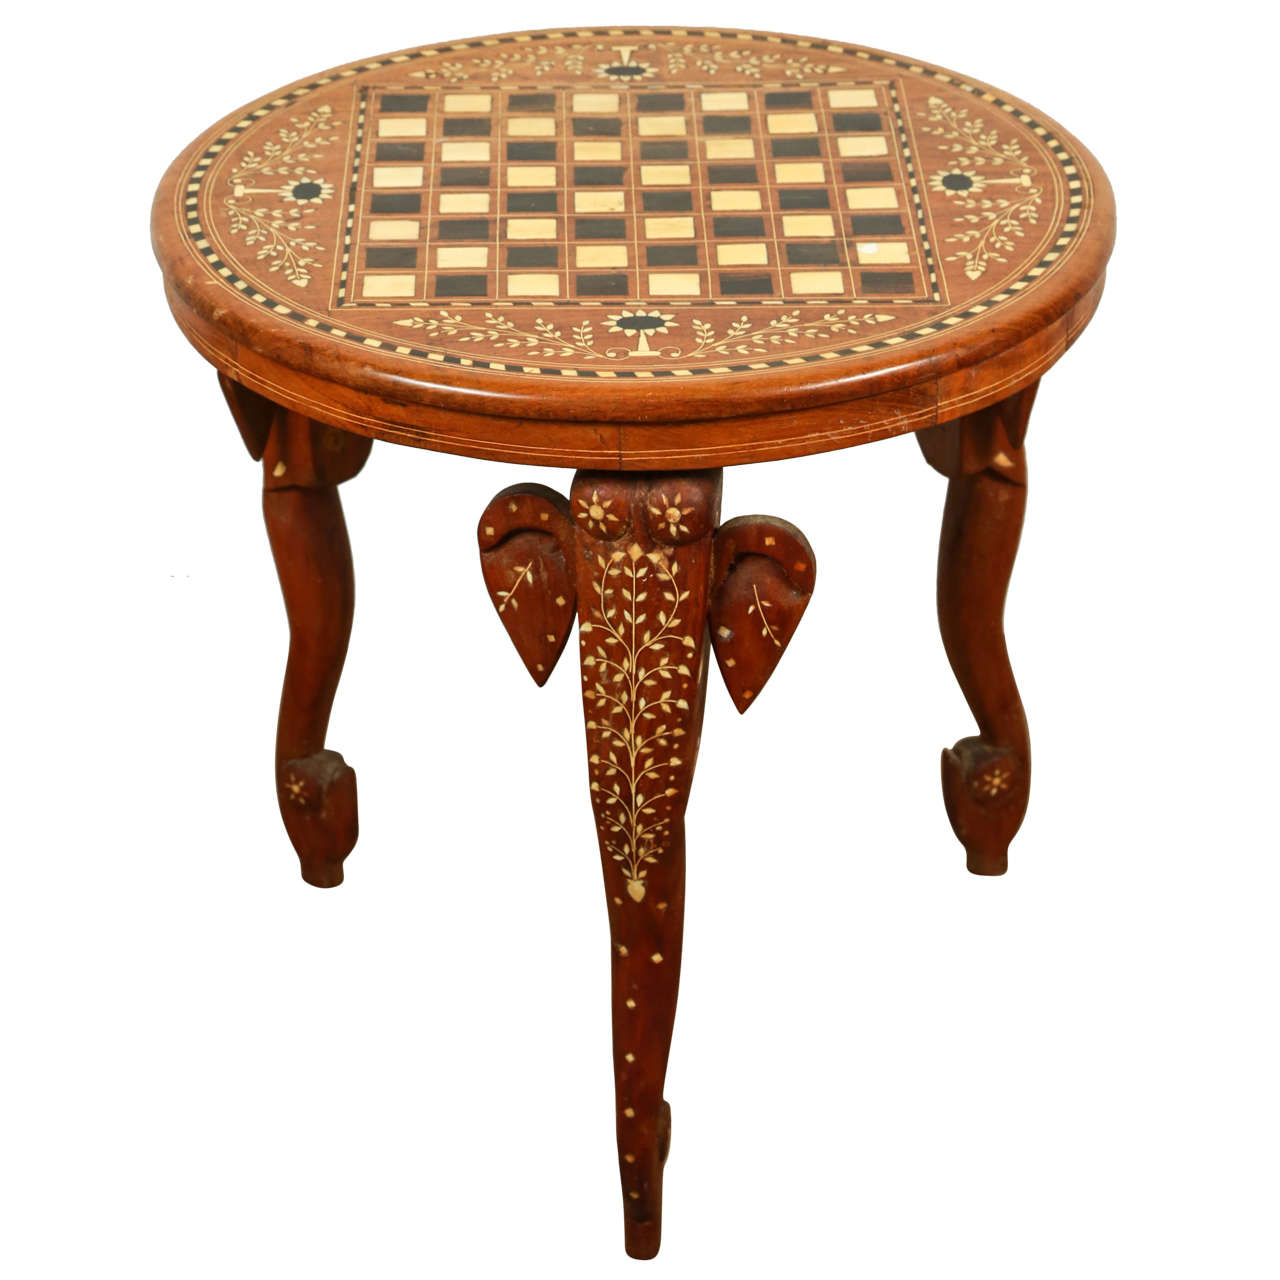 real wood end tables the fantastic nice inlaid anglo side table with mother pearl and elephant head for vintage lane furniture clear round metal dining sauder office sofa decor